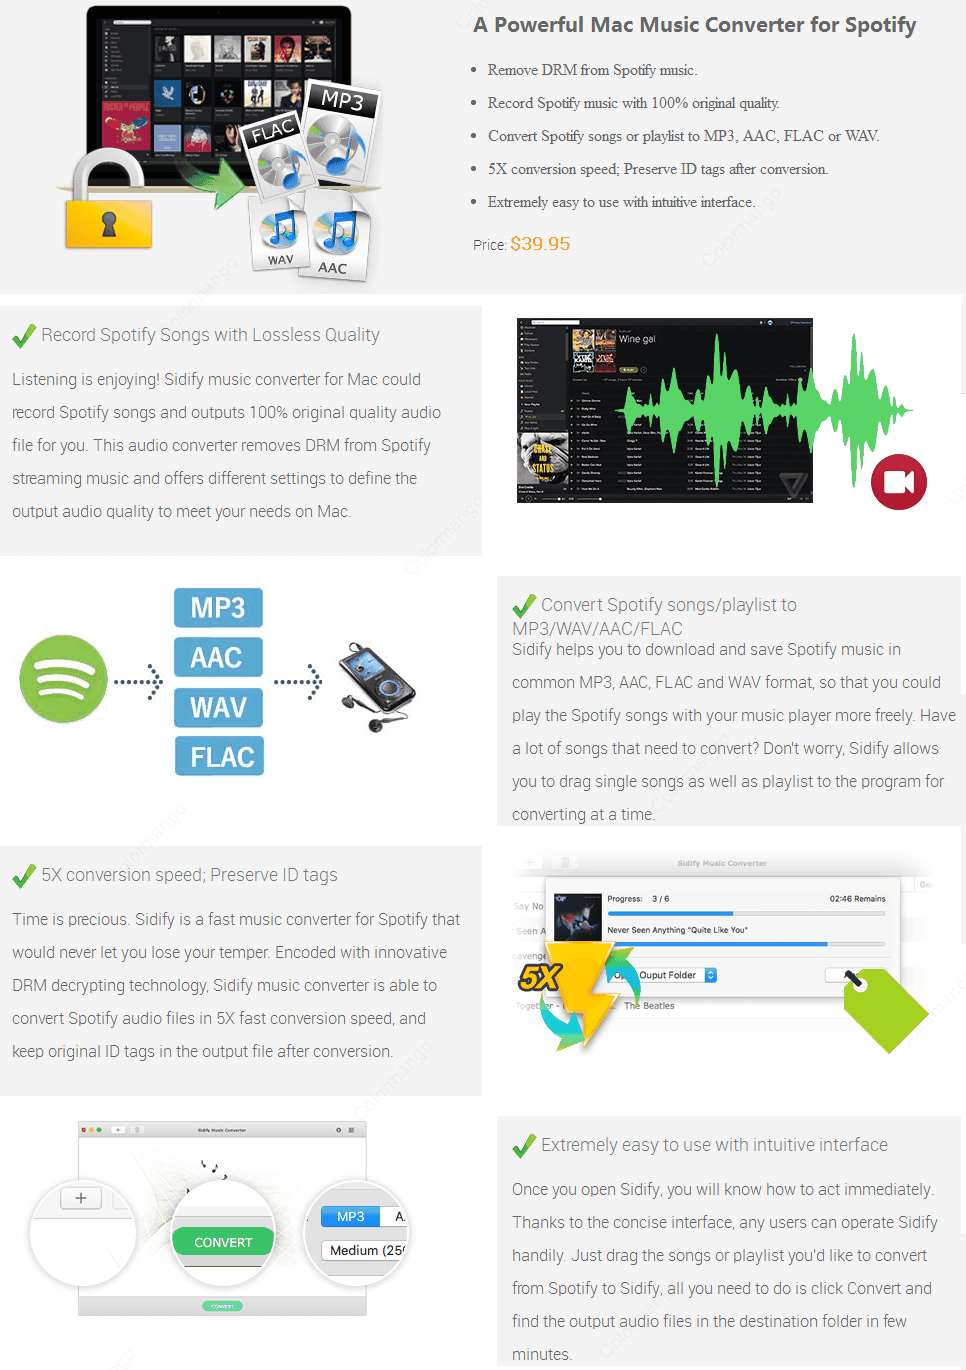 Sidify Music Converter for Spotify key Features